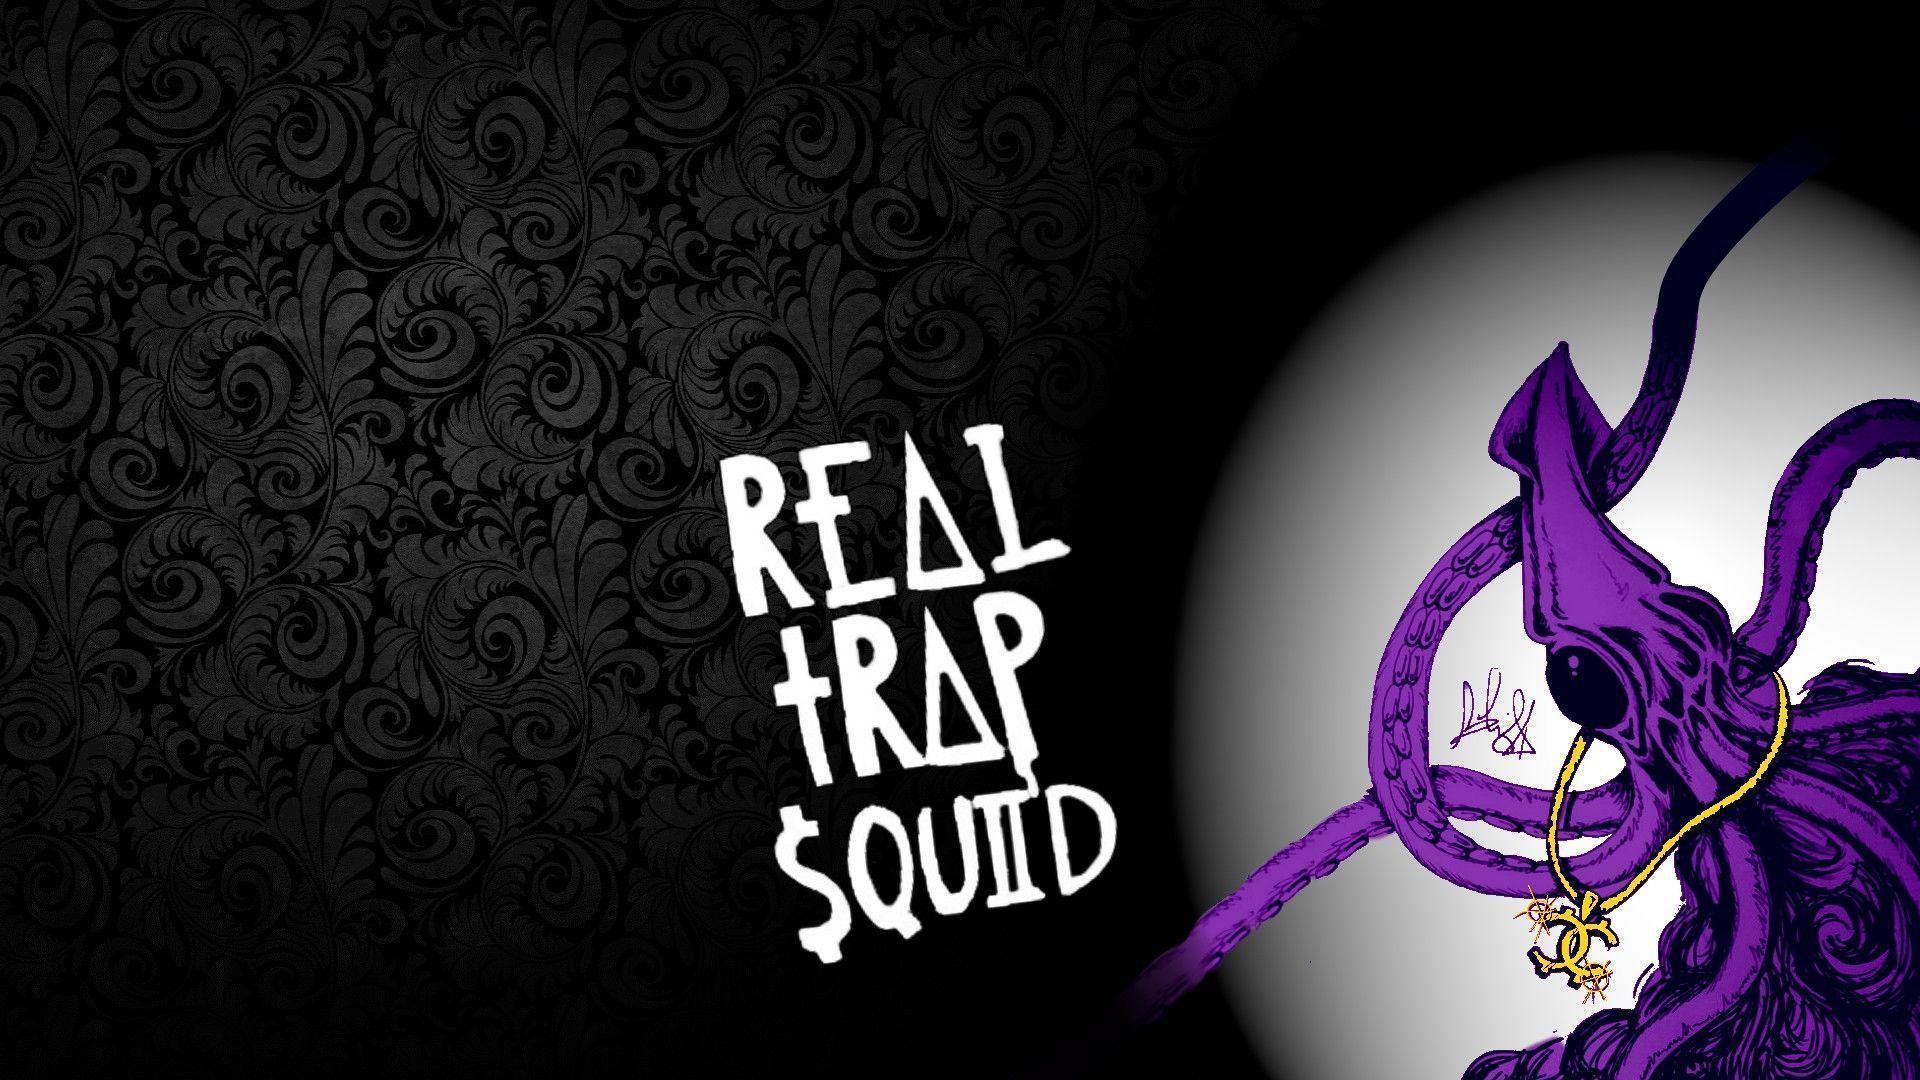 Made a 1920x1080 wallpaper of the Trap Squid. /r/Wallpapers showed ...